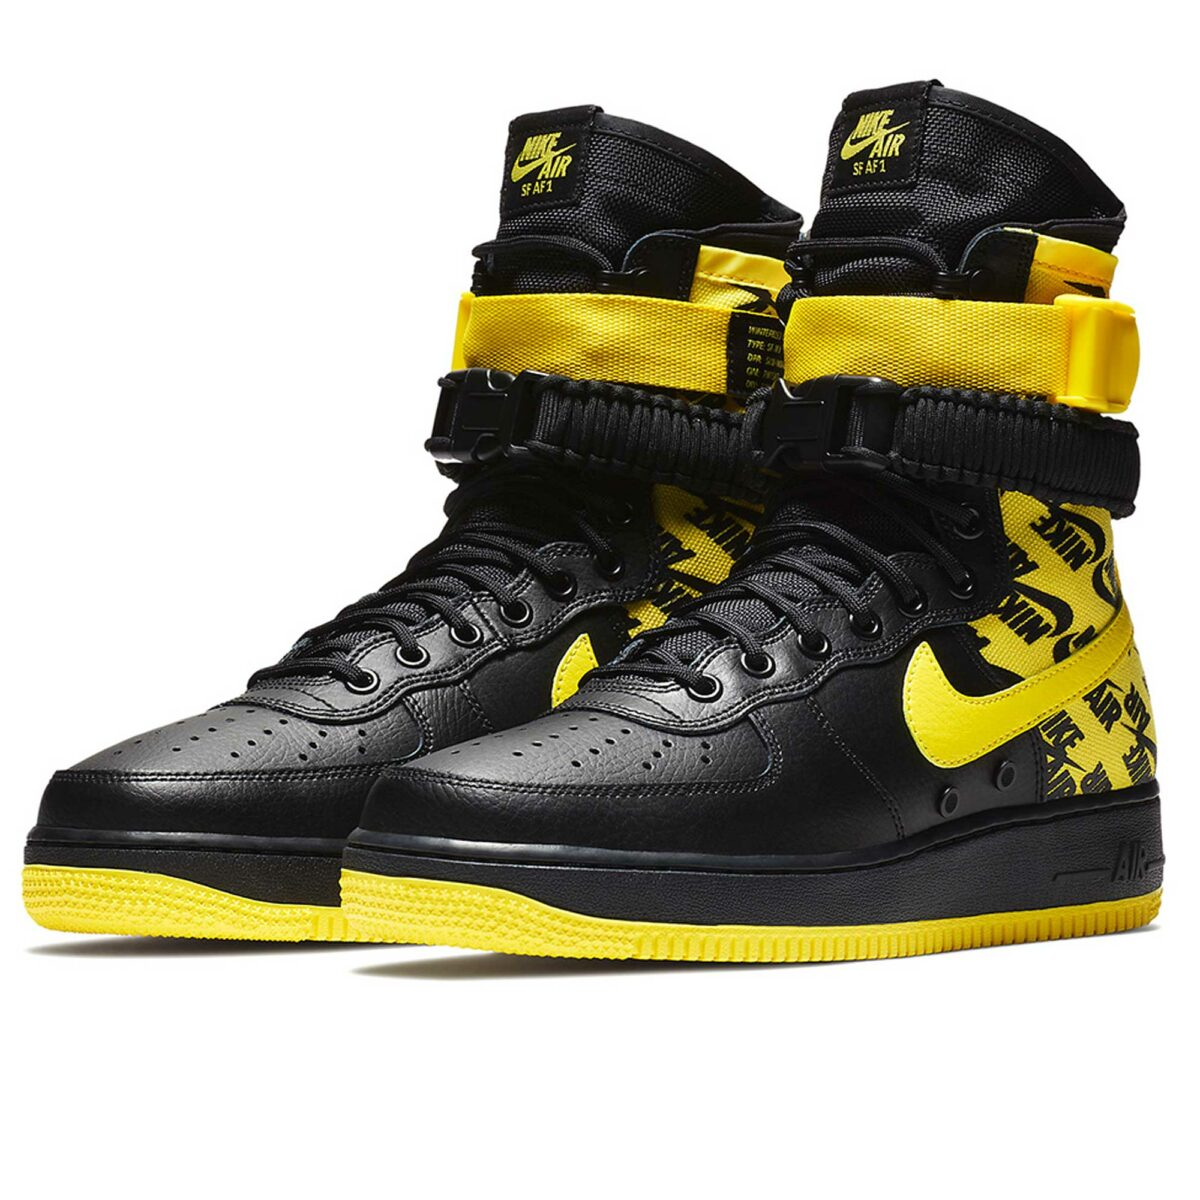 nike sf af1 dynamic yellow ar1955_001 купить